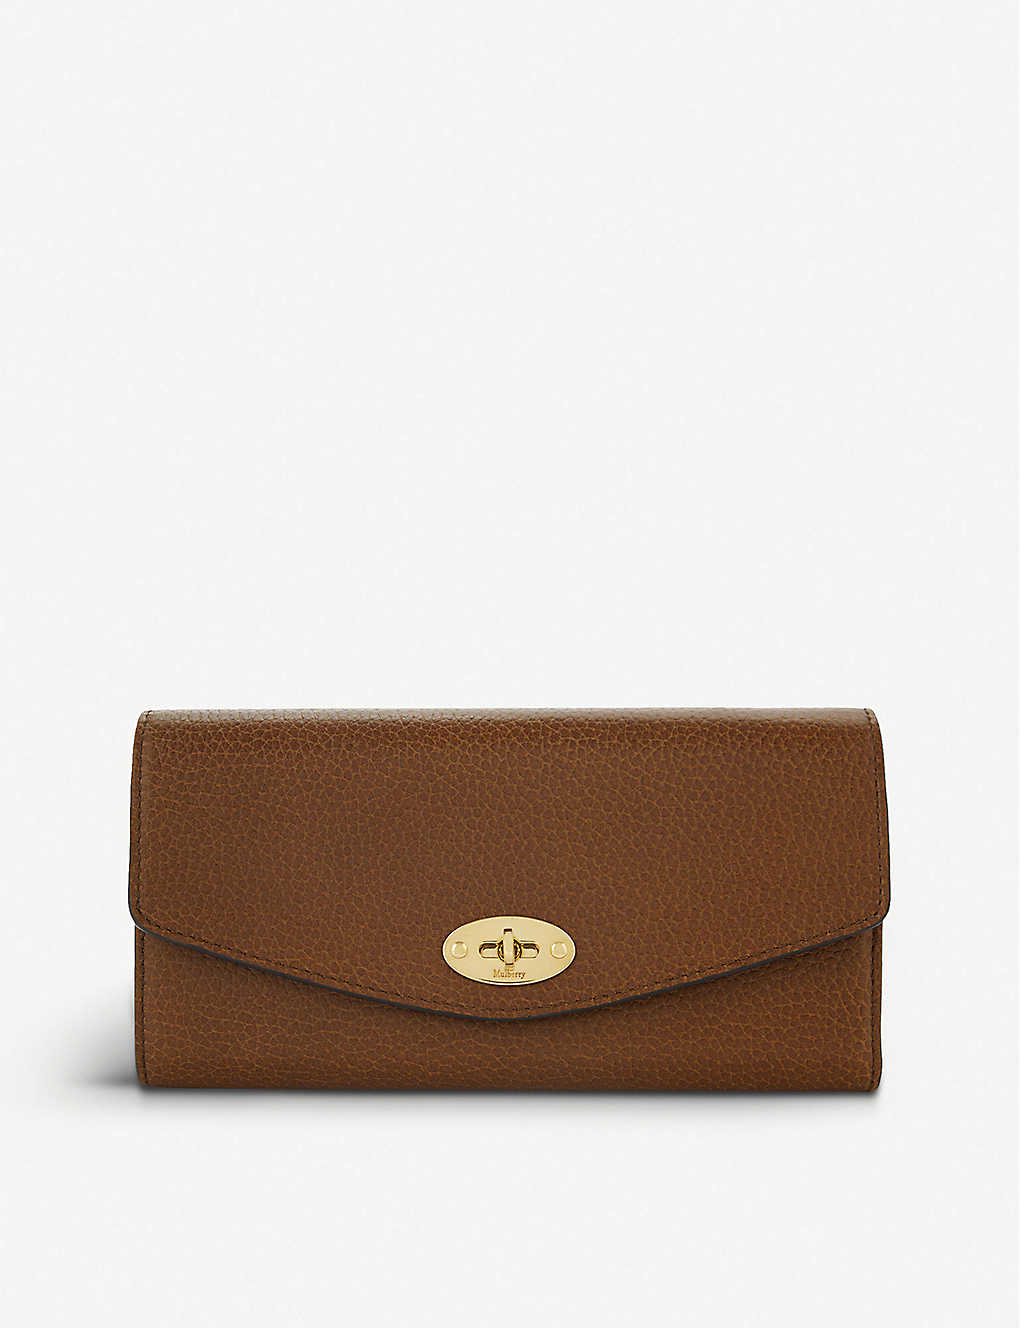 42cff4a405 MULBERRY - Darley leather wallet | Selfridges.com